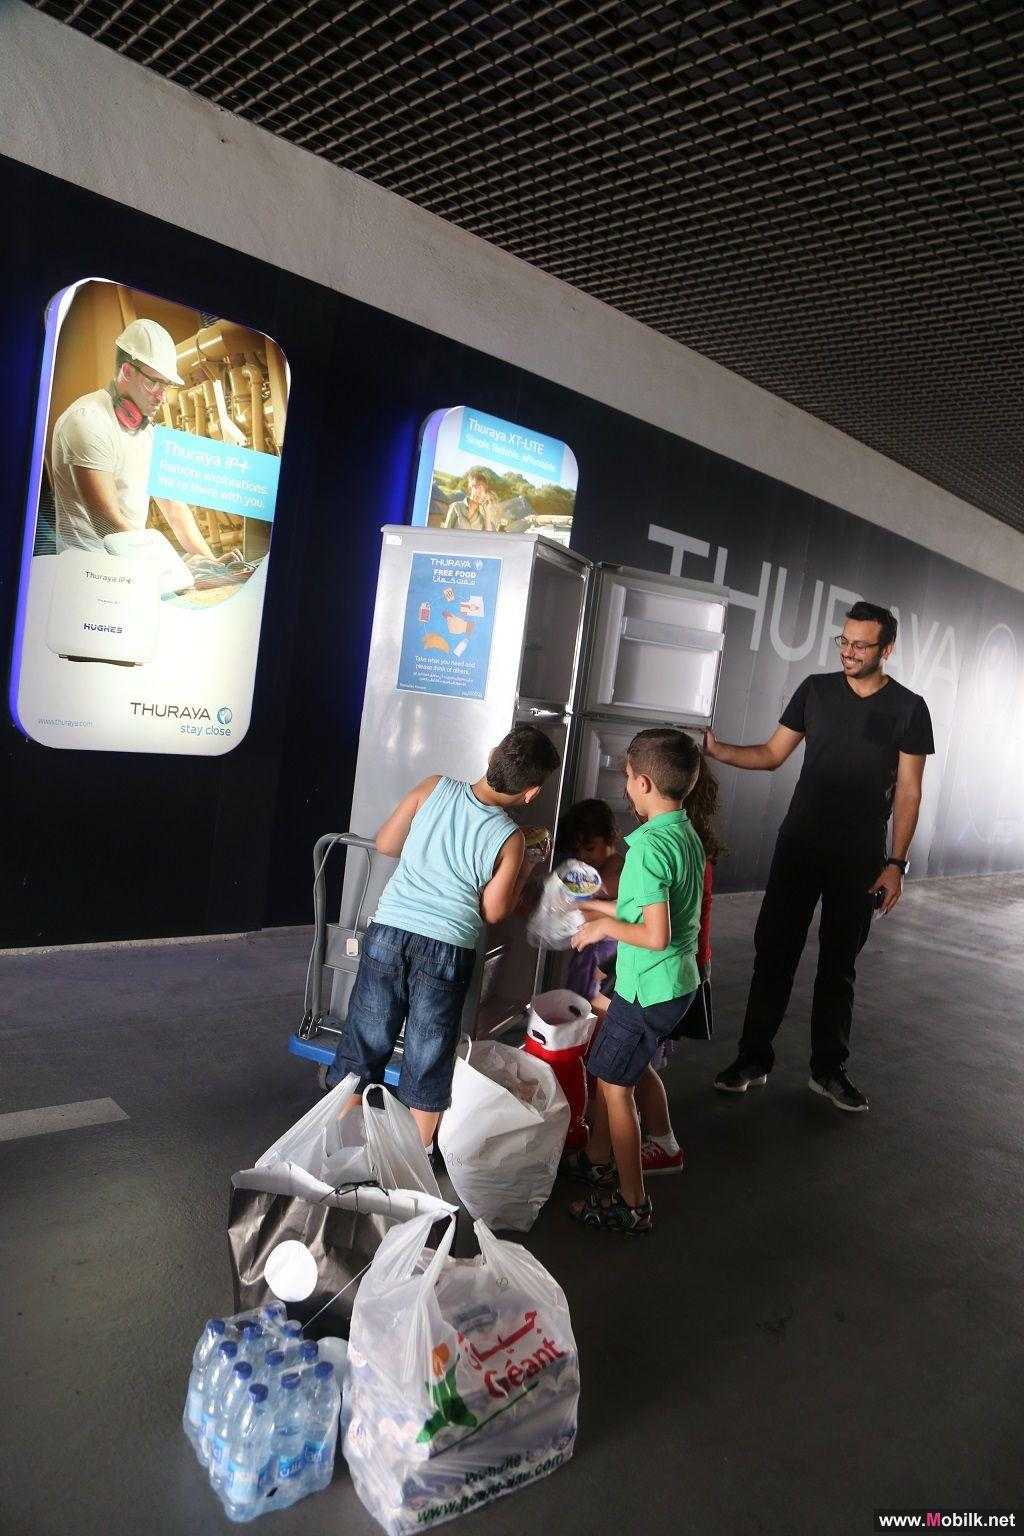 Thuraya participates in this Year's Sharing Fridge Campaign